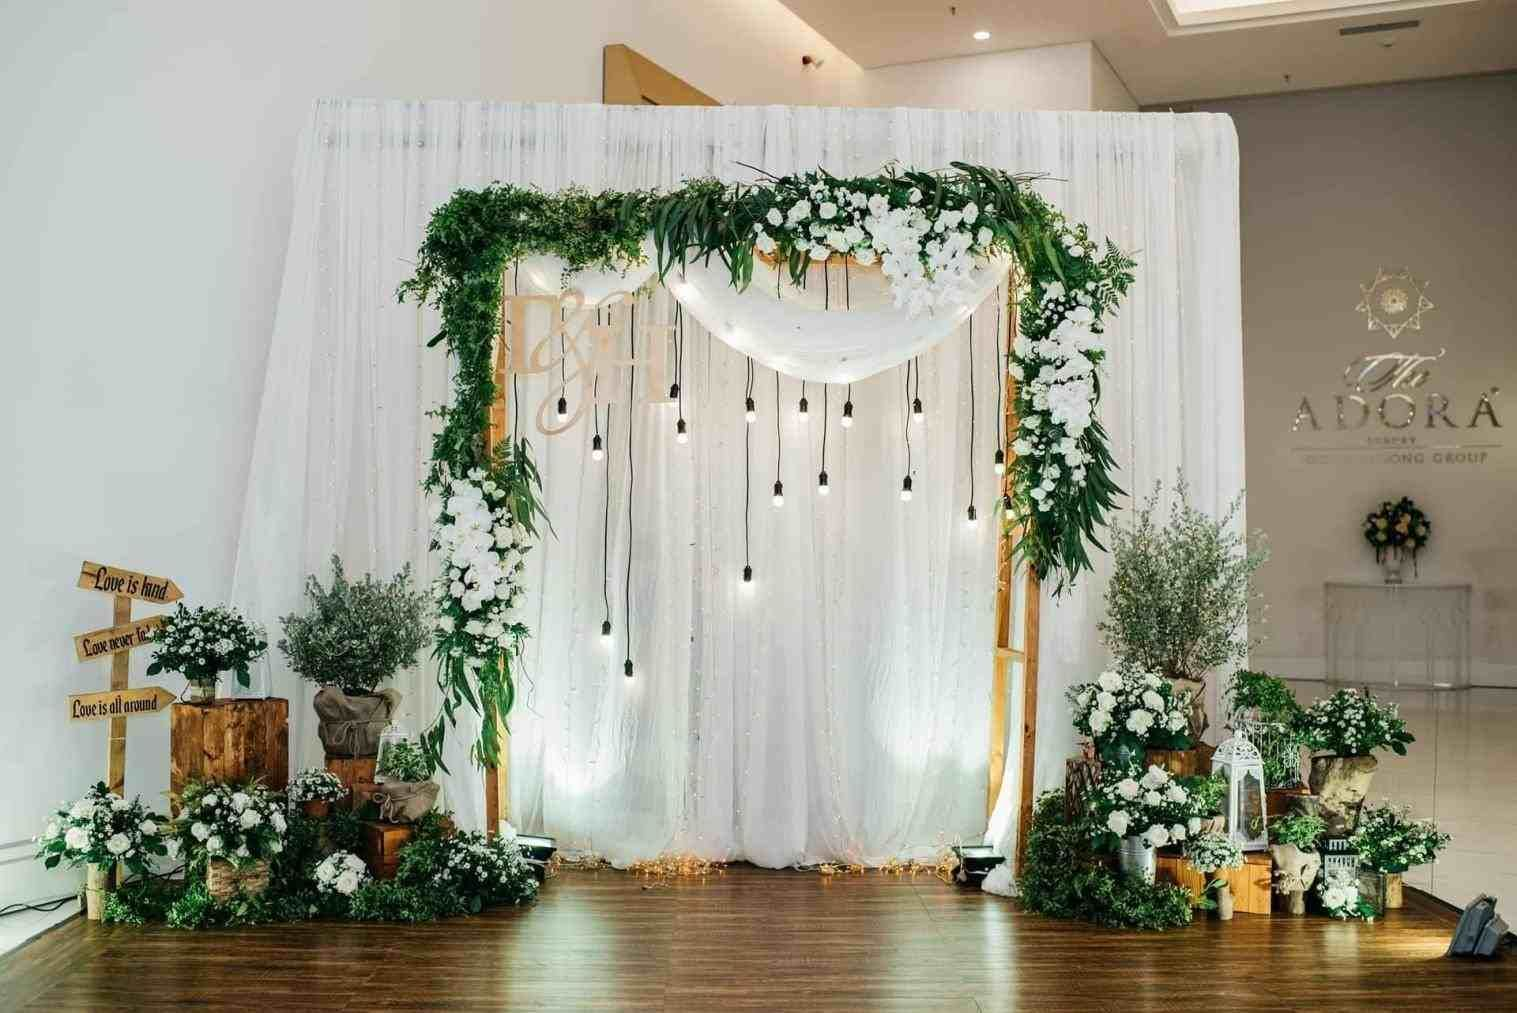 Graduation Party Planning Image By Amy In 2020 Wedding Arch